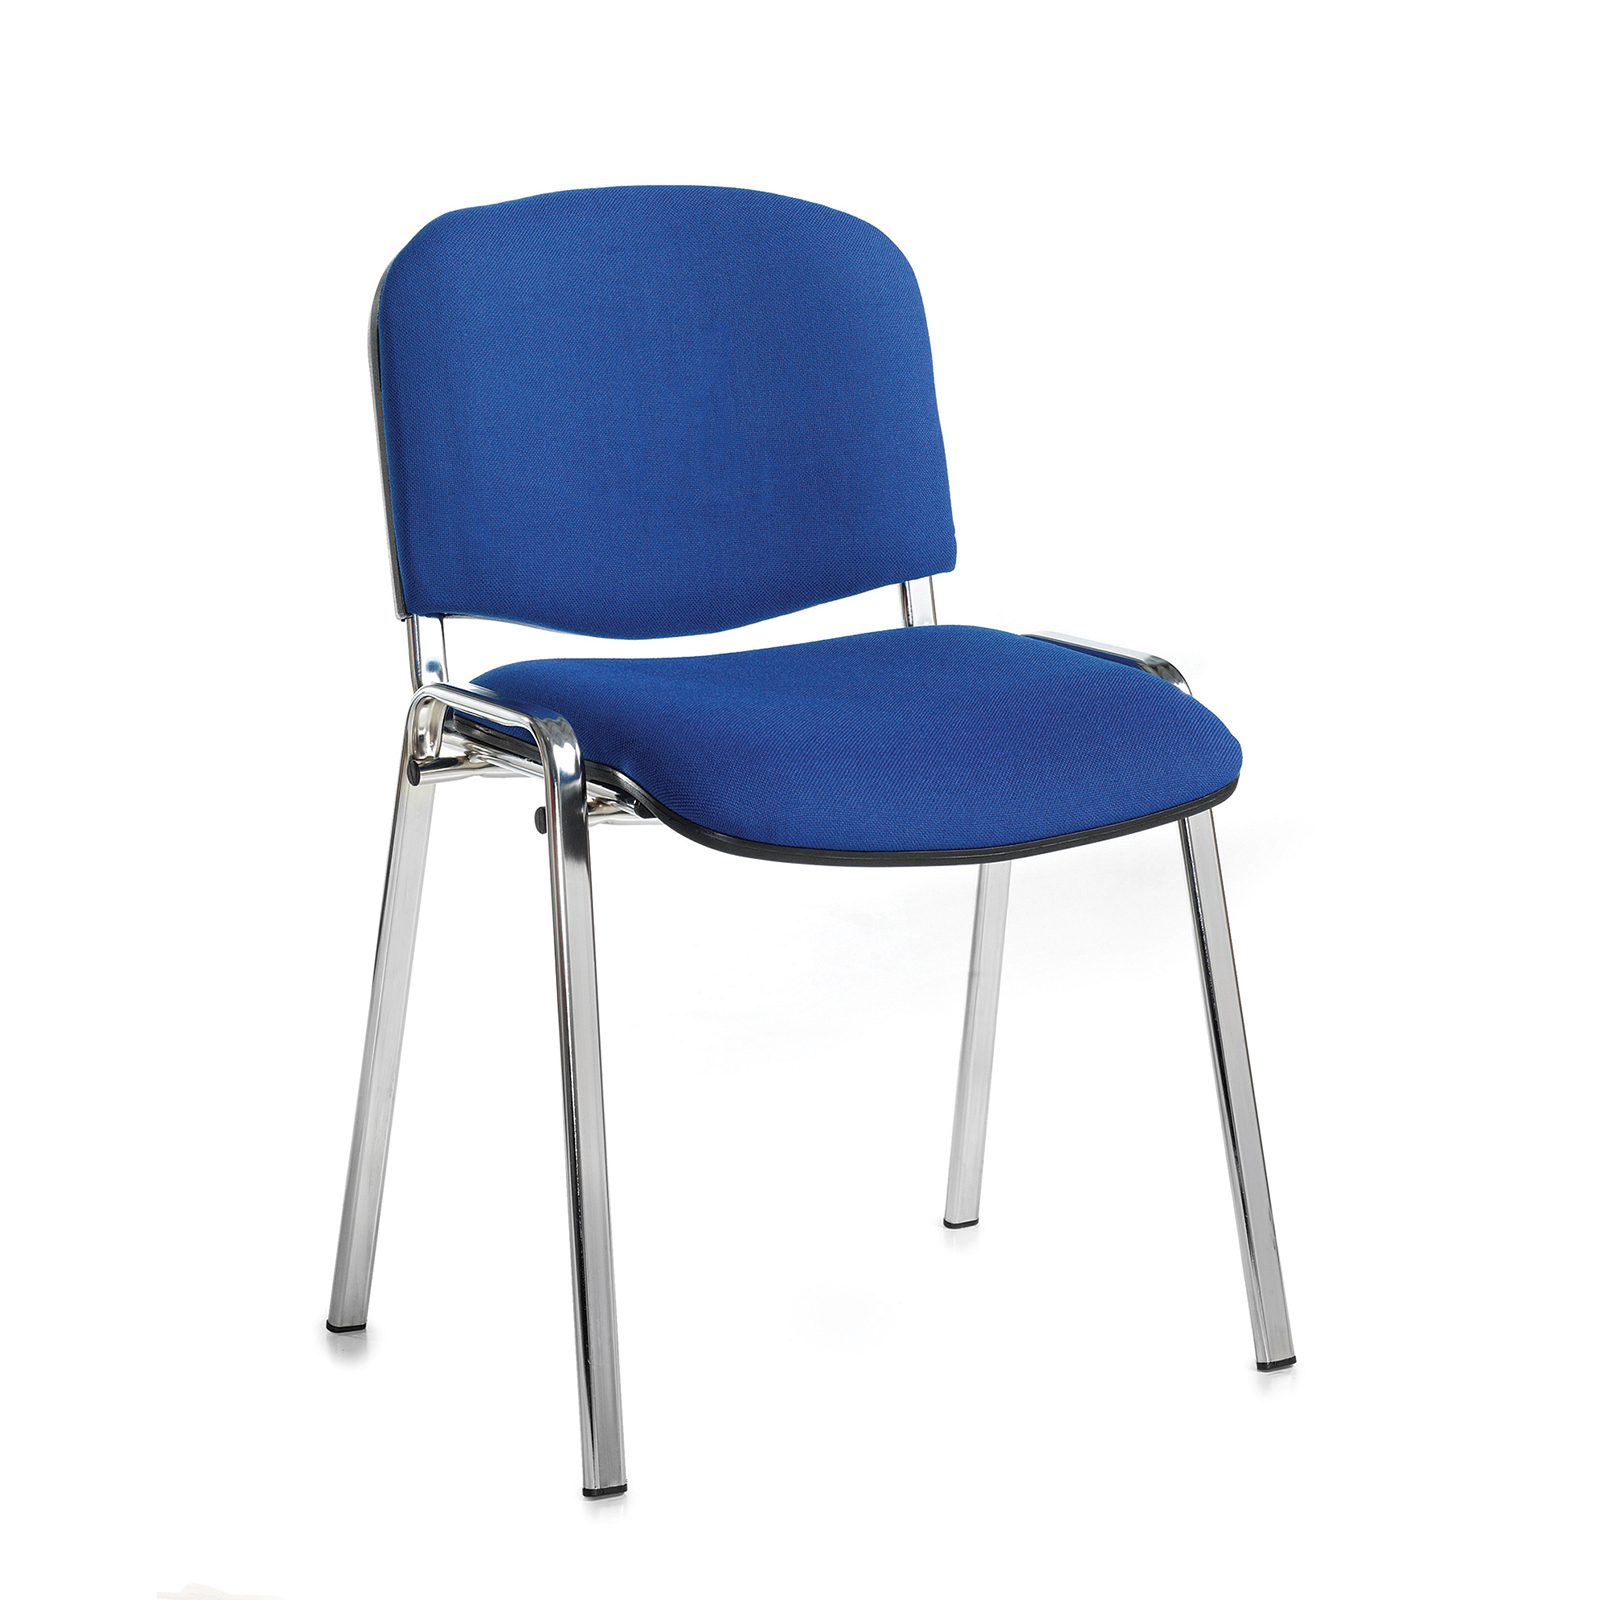 Boardroom / Meeting Taurus meeting room stackable chair with chrome frame and no arms - blue